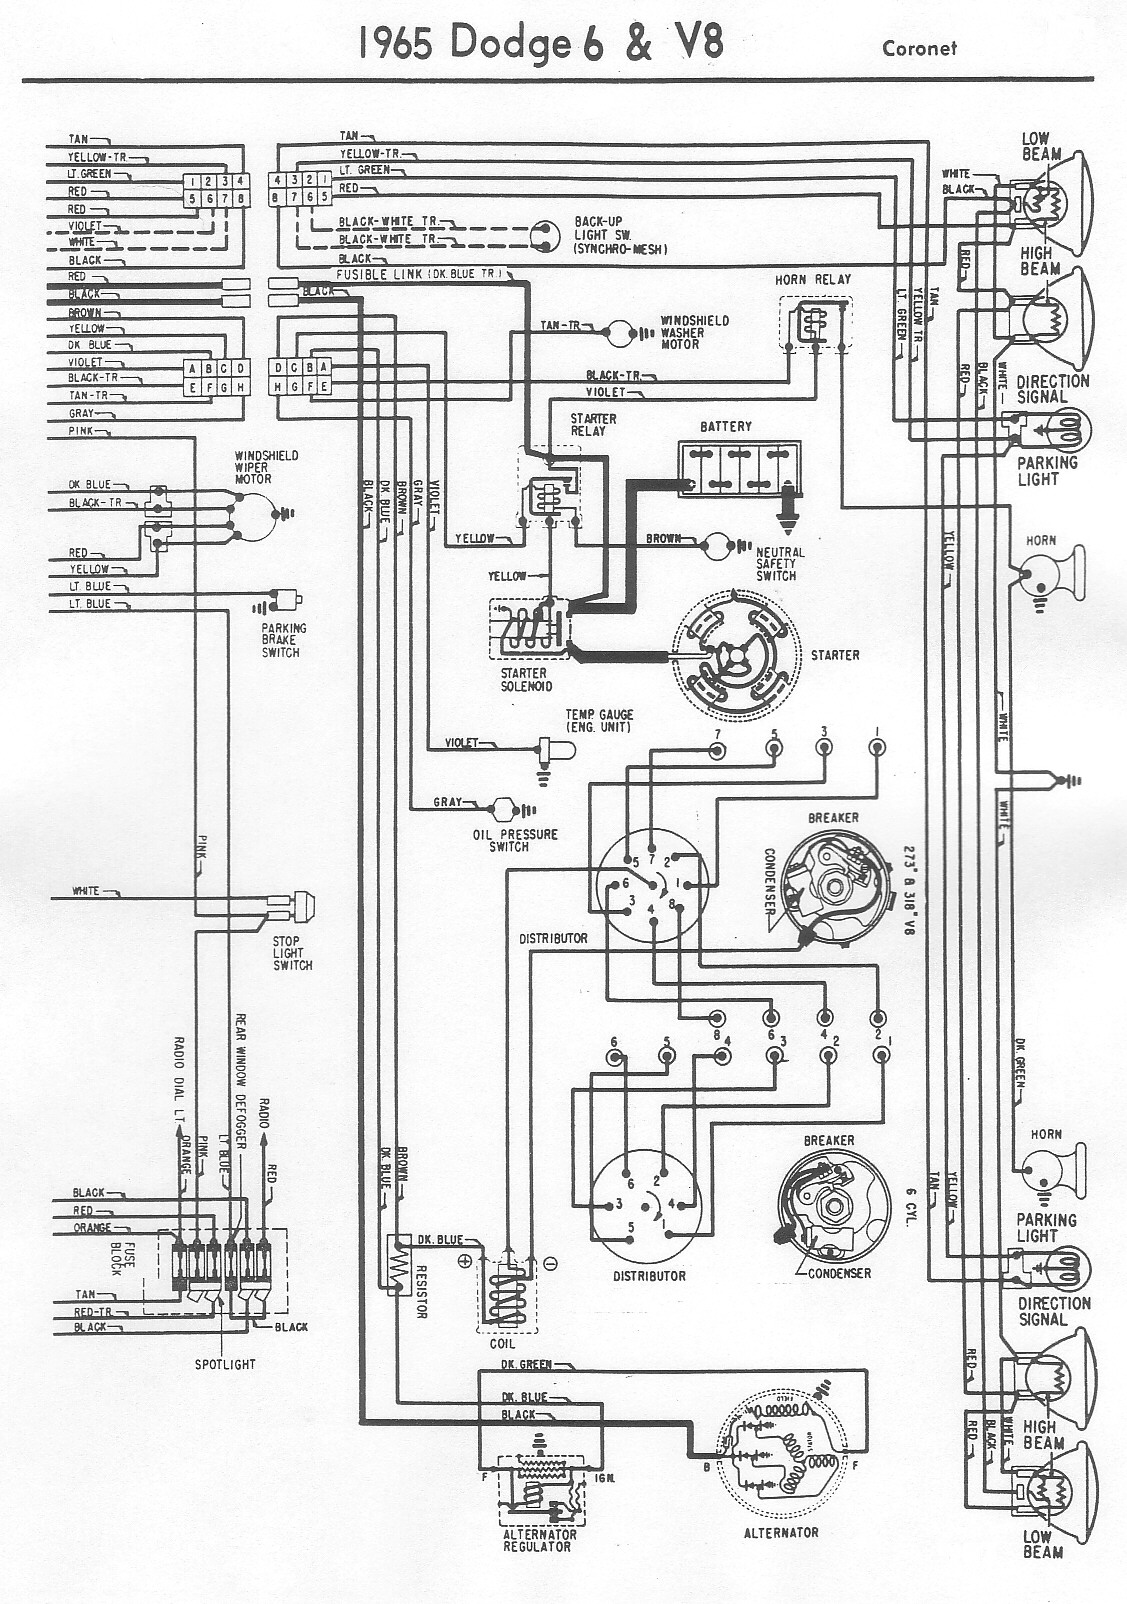 medium resolution of 1966 dodge d 300 wiring diagram wiring diagram portal 1966 dodge charger wiring diagram 1963 chrysler